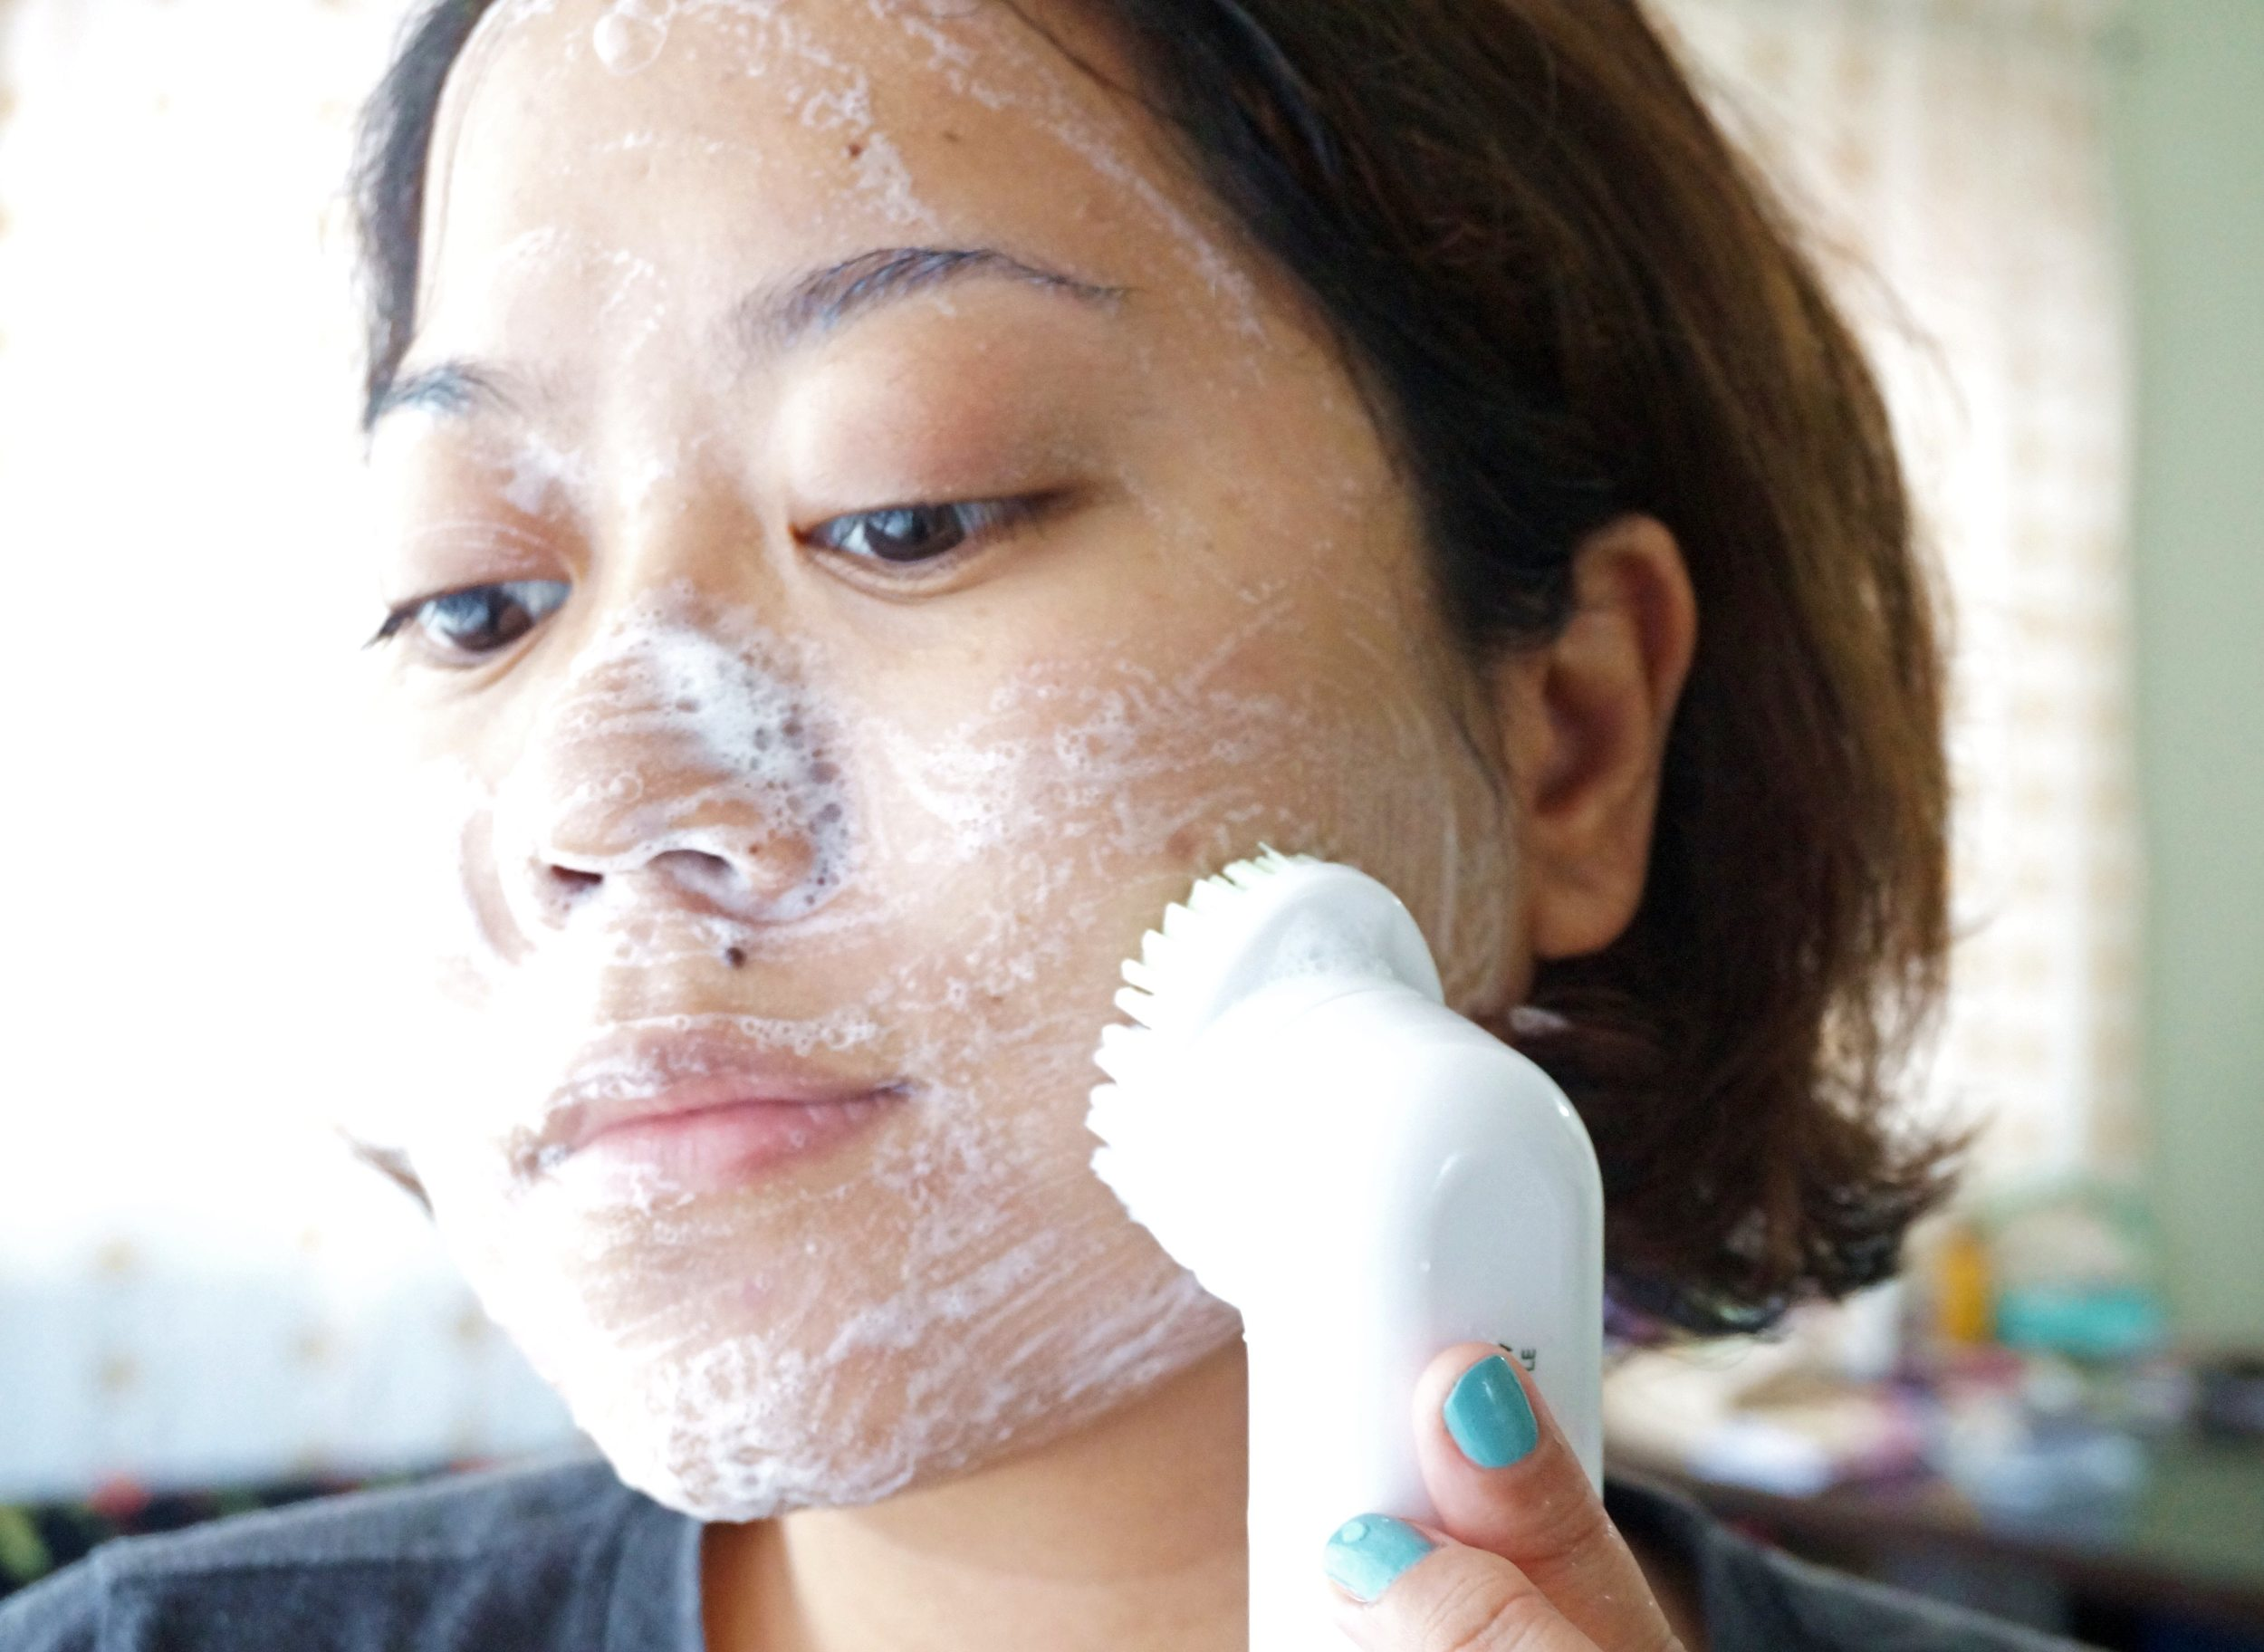 You can use the brush twice a day, as long as you don't press it hard on your face.